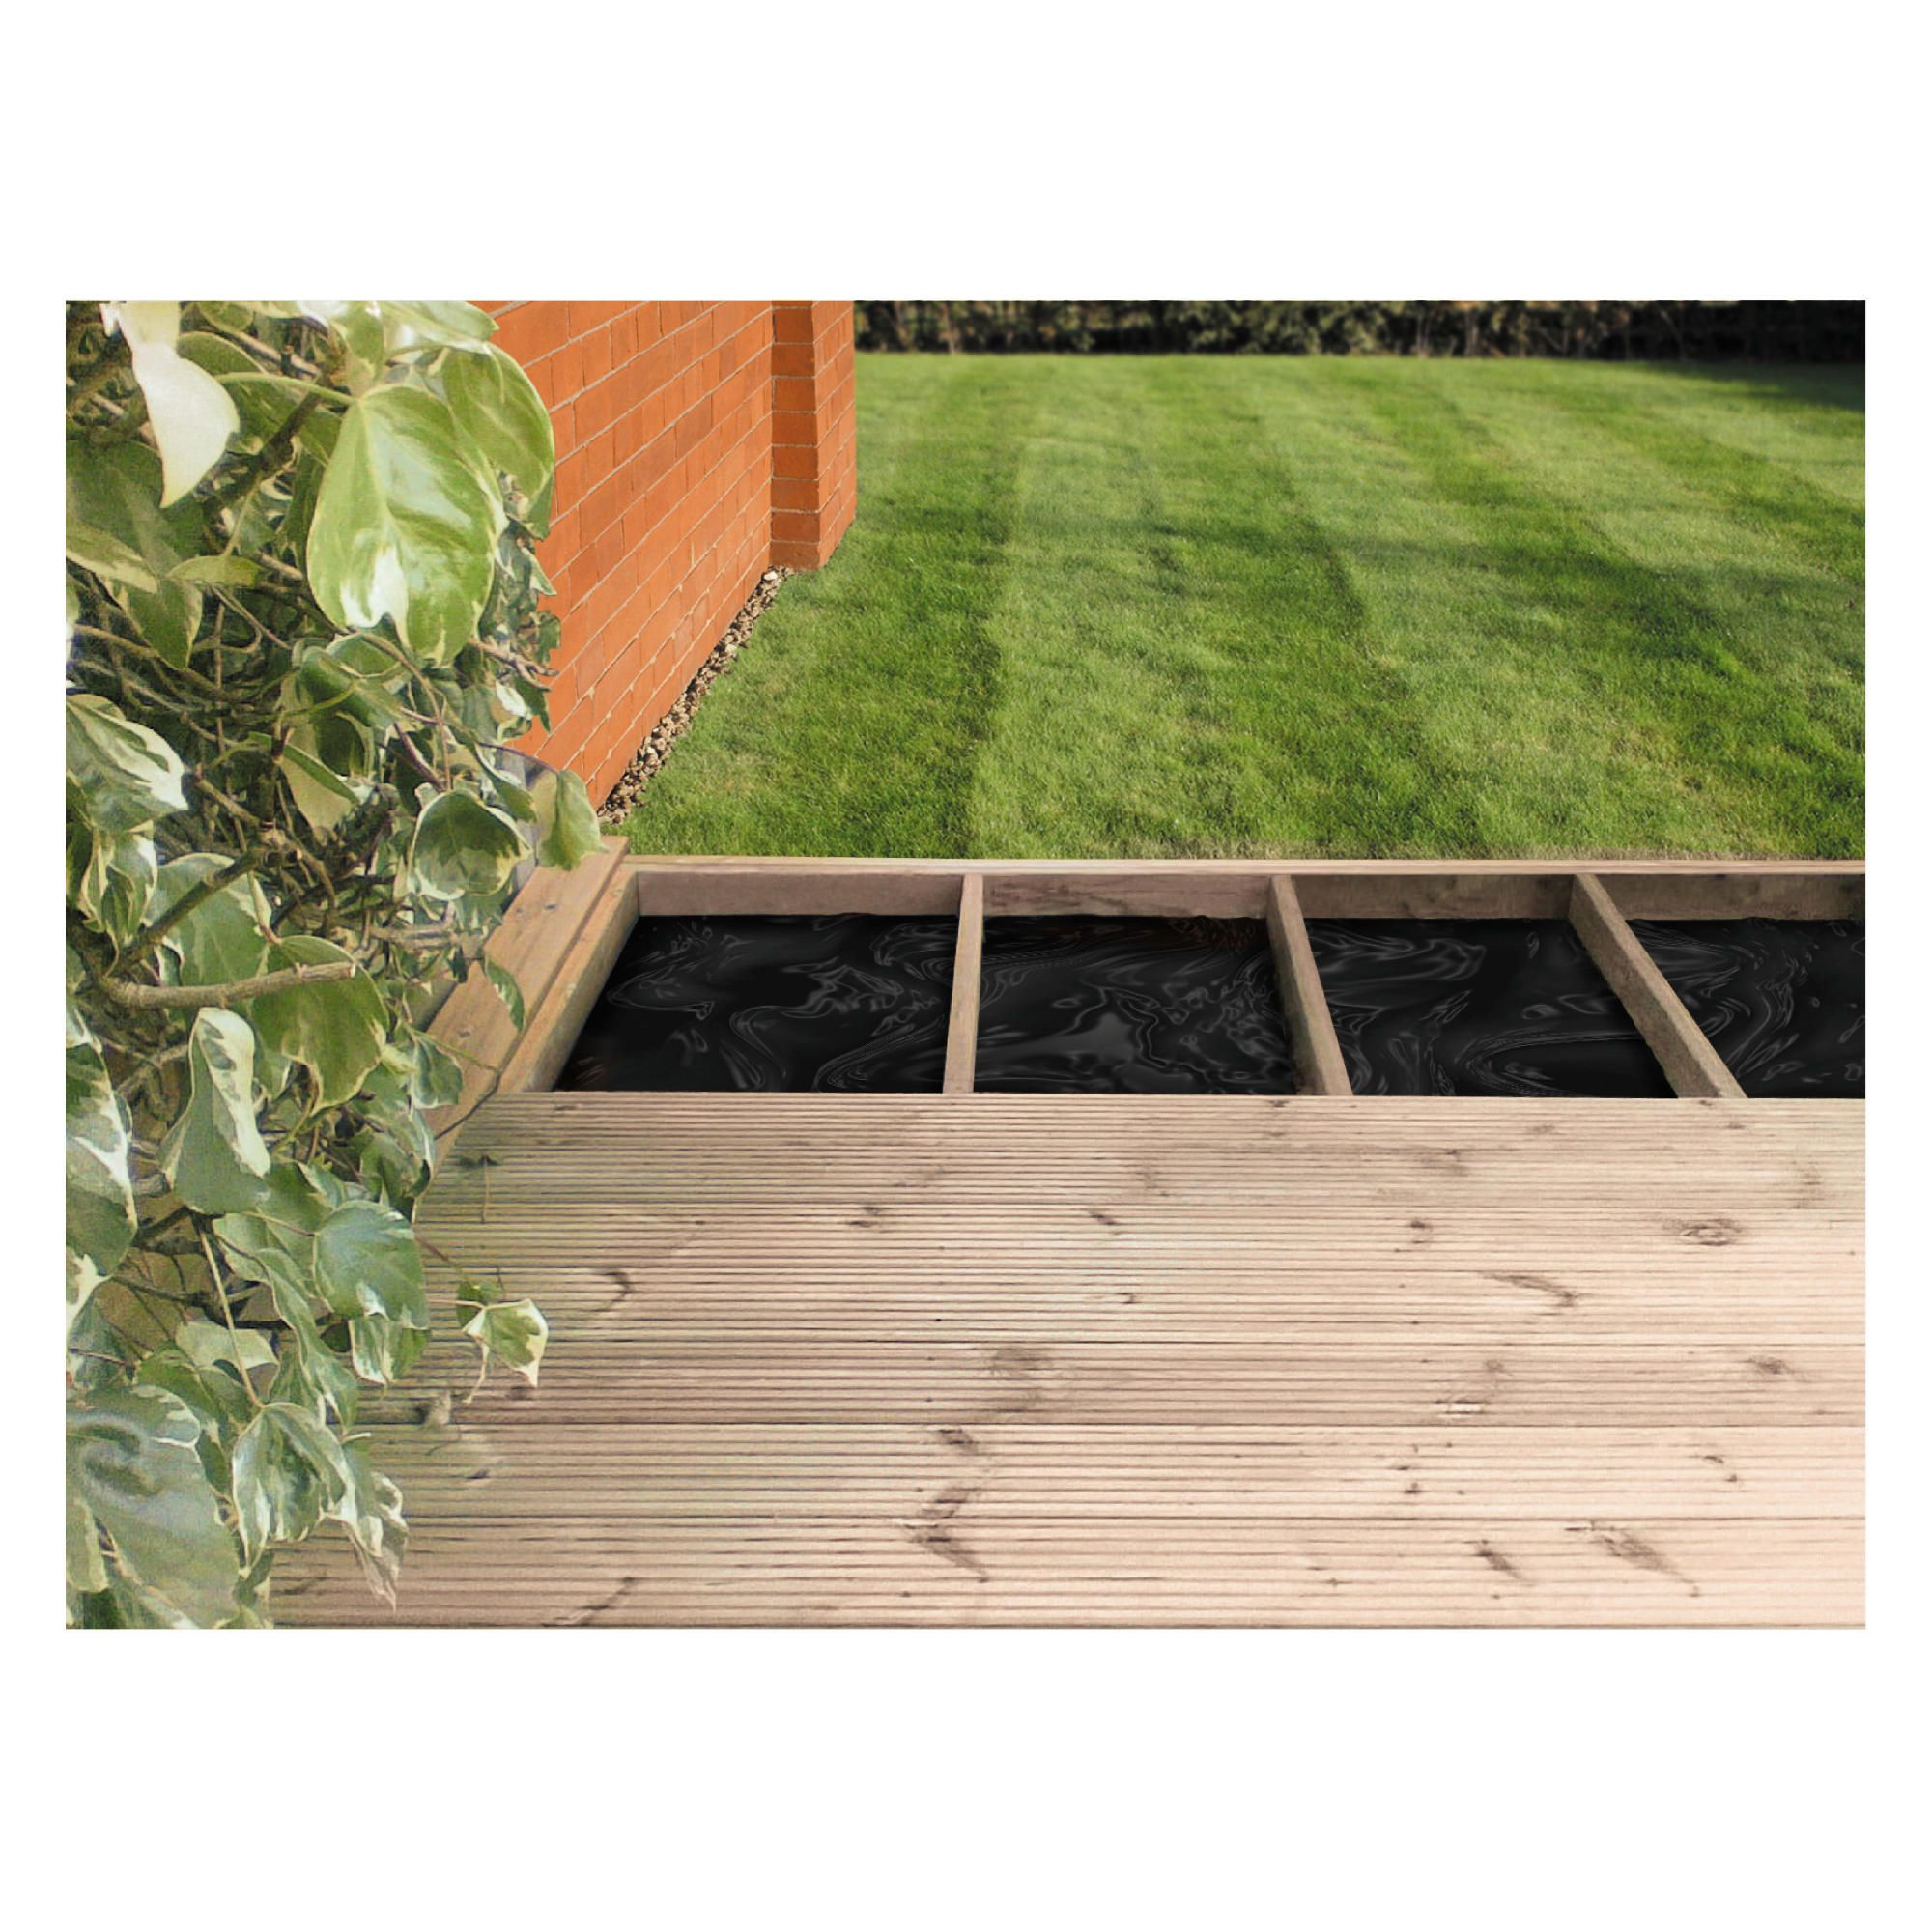 Finnlife Deck and Joist Pack (2.4mx3.6m). at Tesco Direct